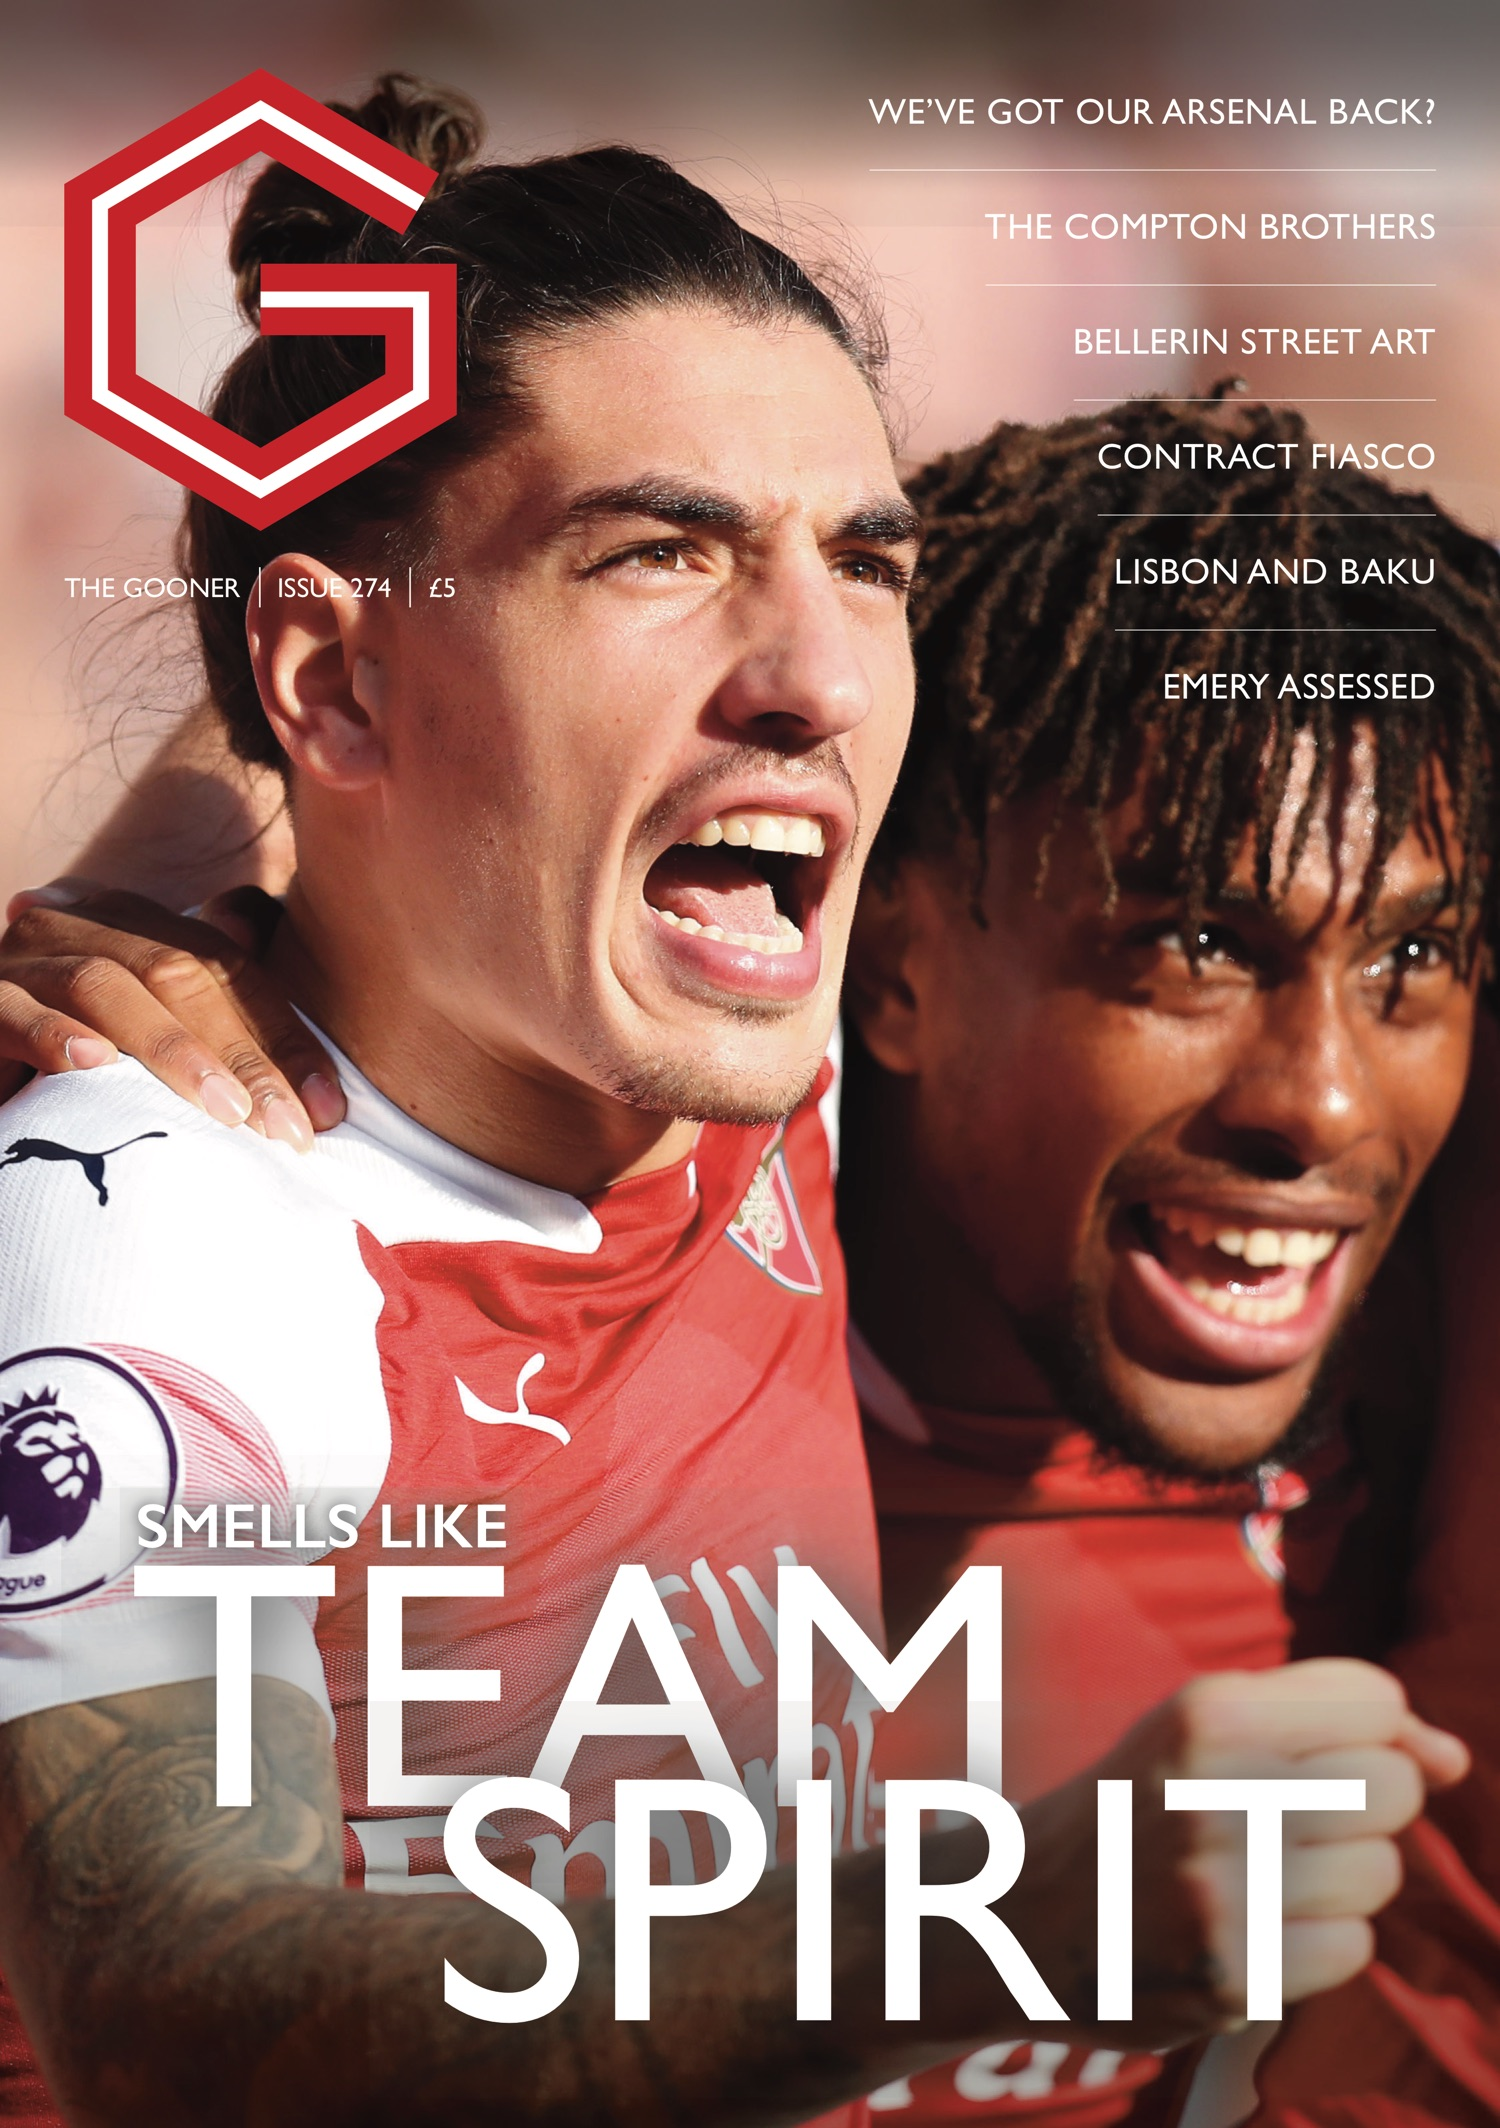 The Gooner Issue 274 (overseas)